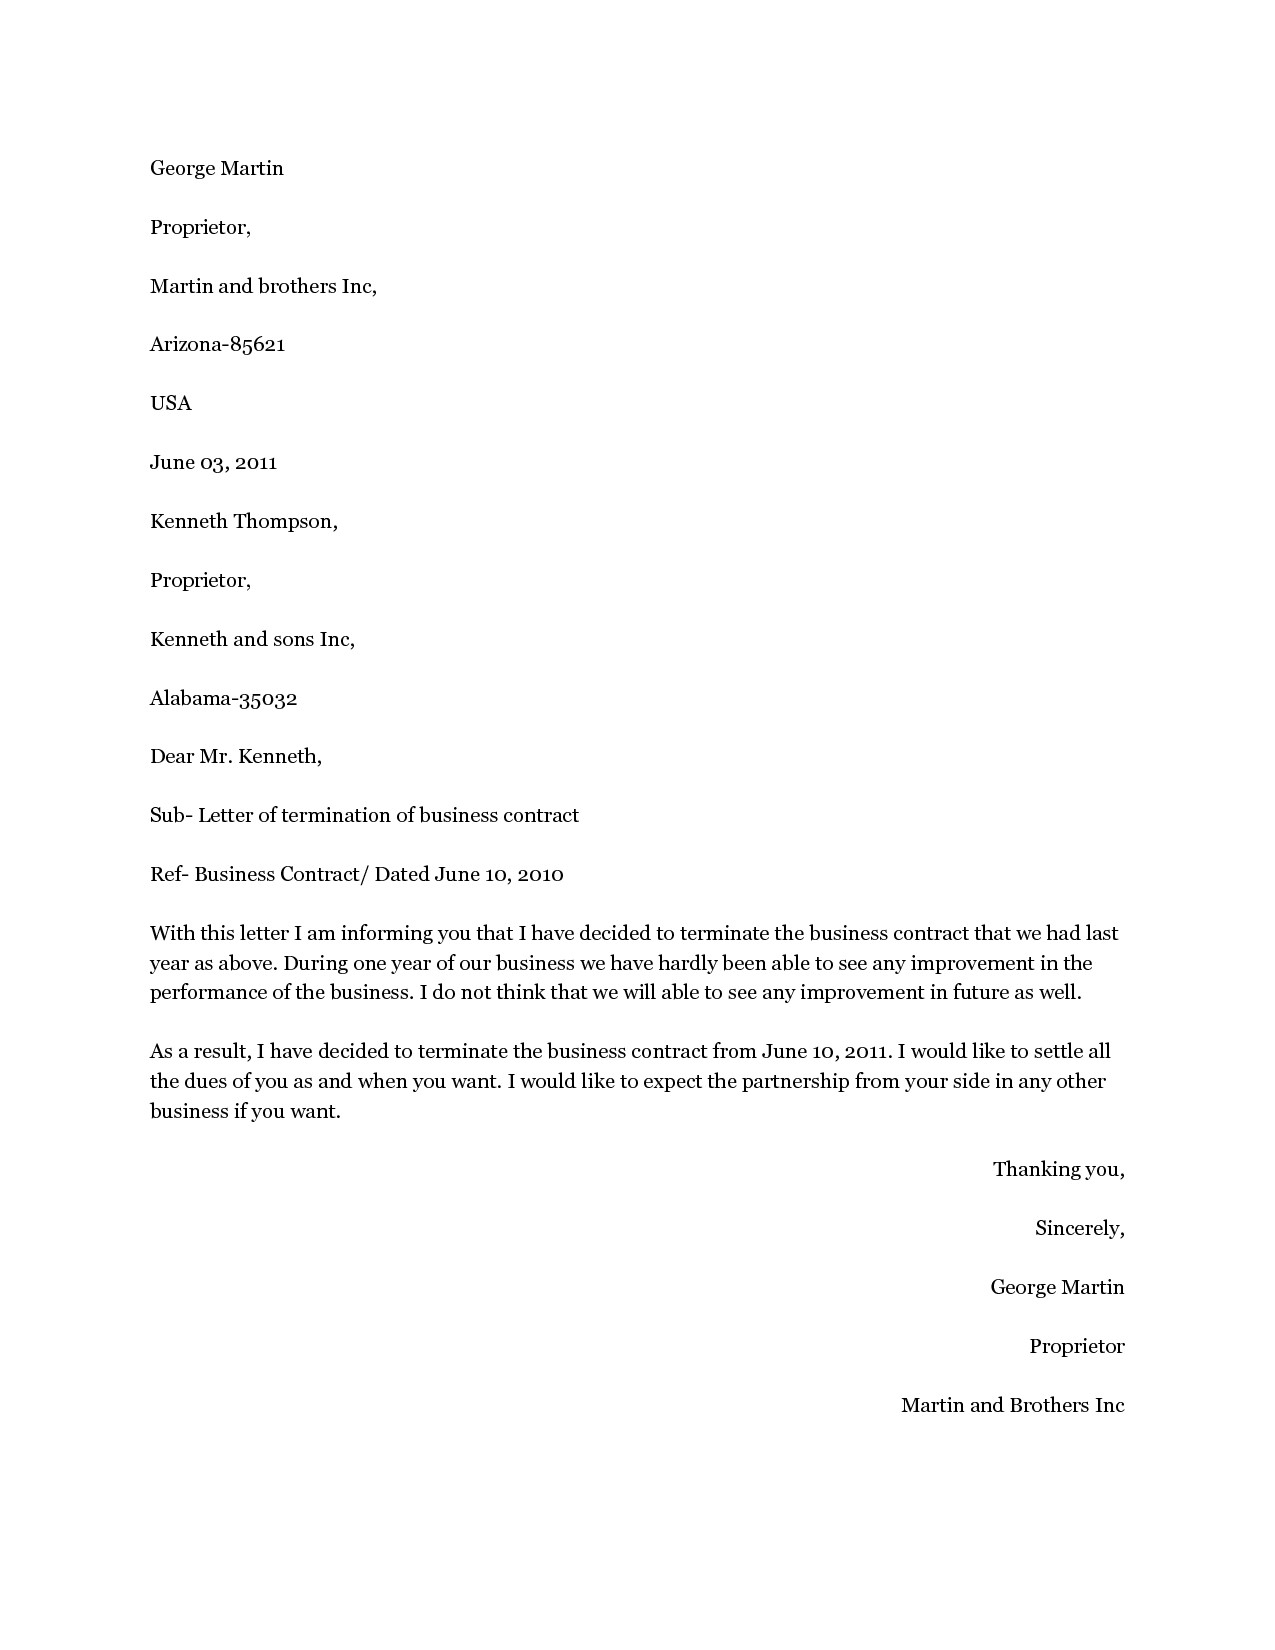 Dismissal Letter Template - Cancellation Contract Luxury Contract Termination Letter for